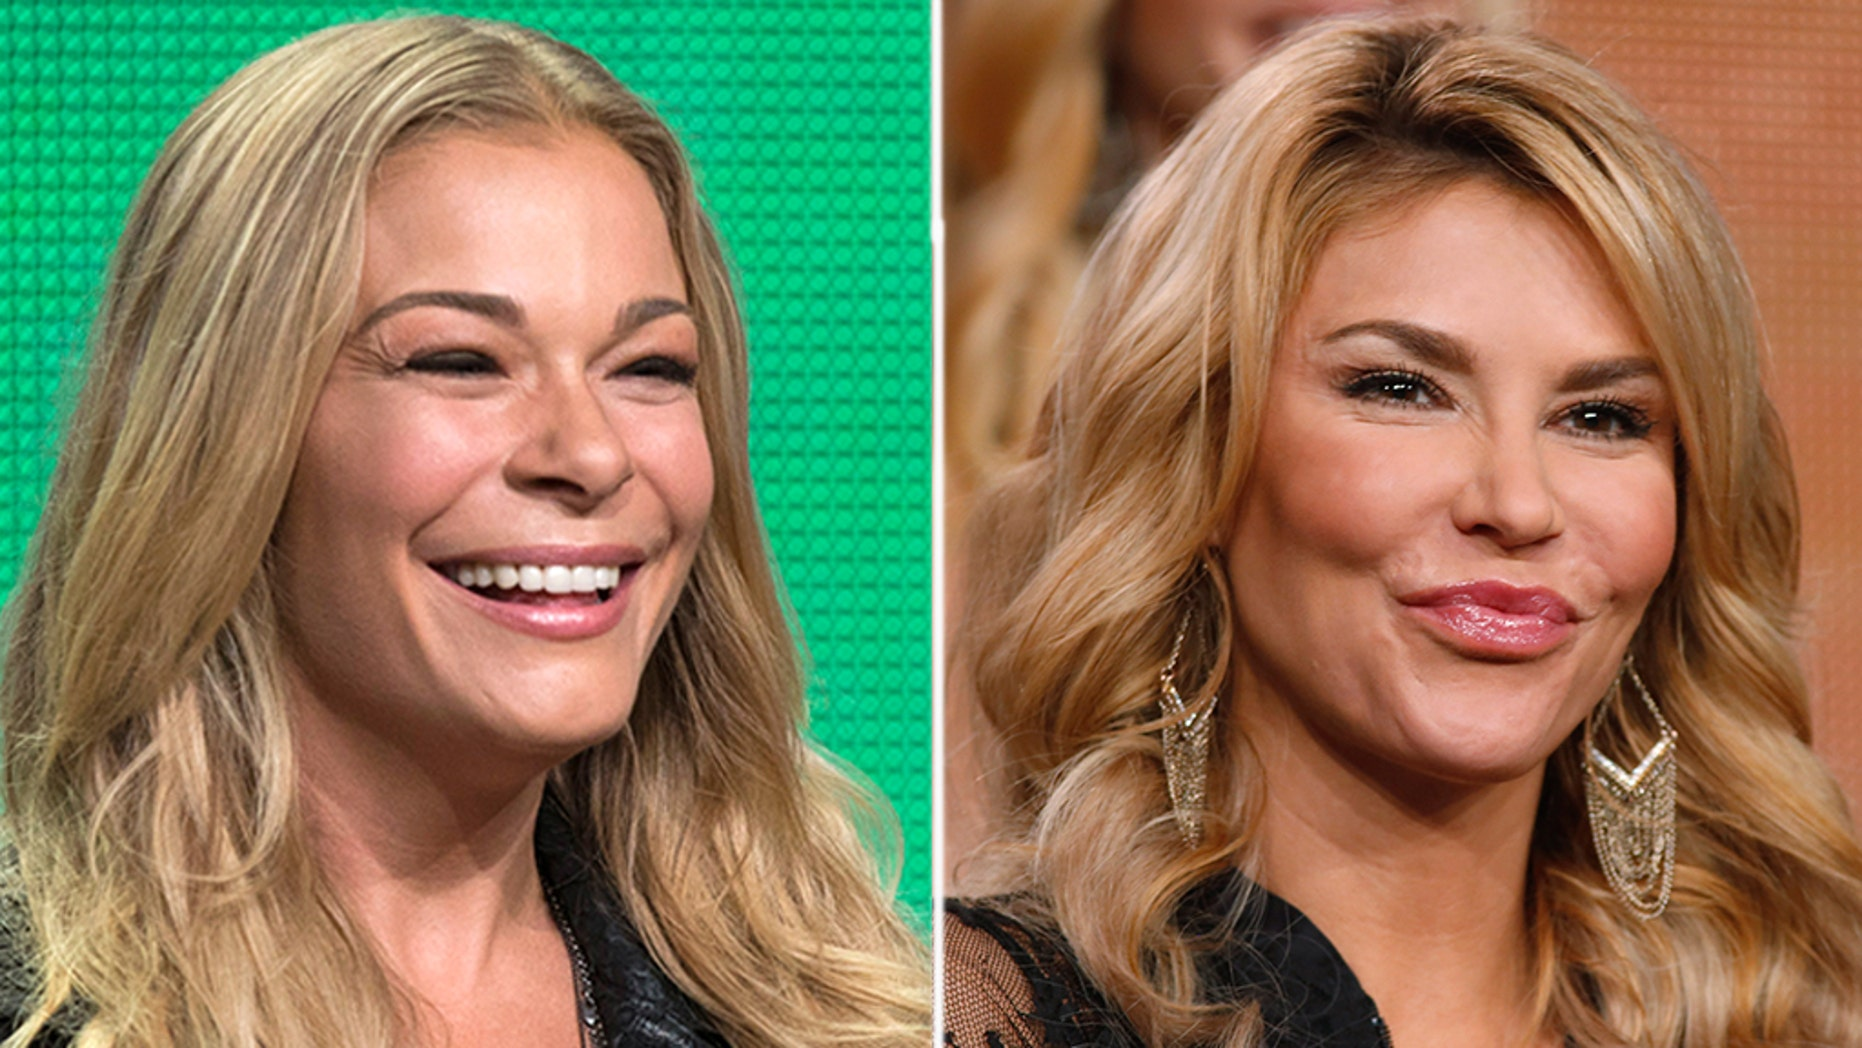 Brandi Glanville discusses ending her longtime feud with LeAnn Rimes.